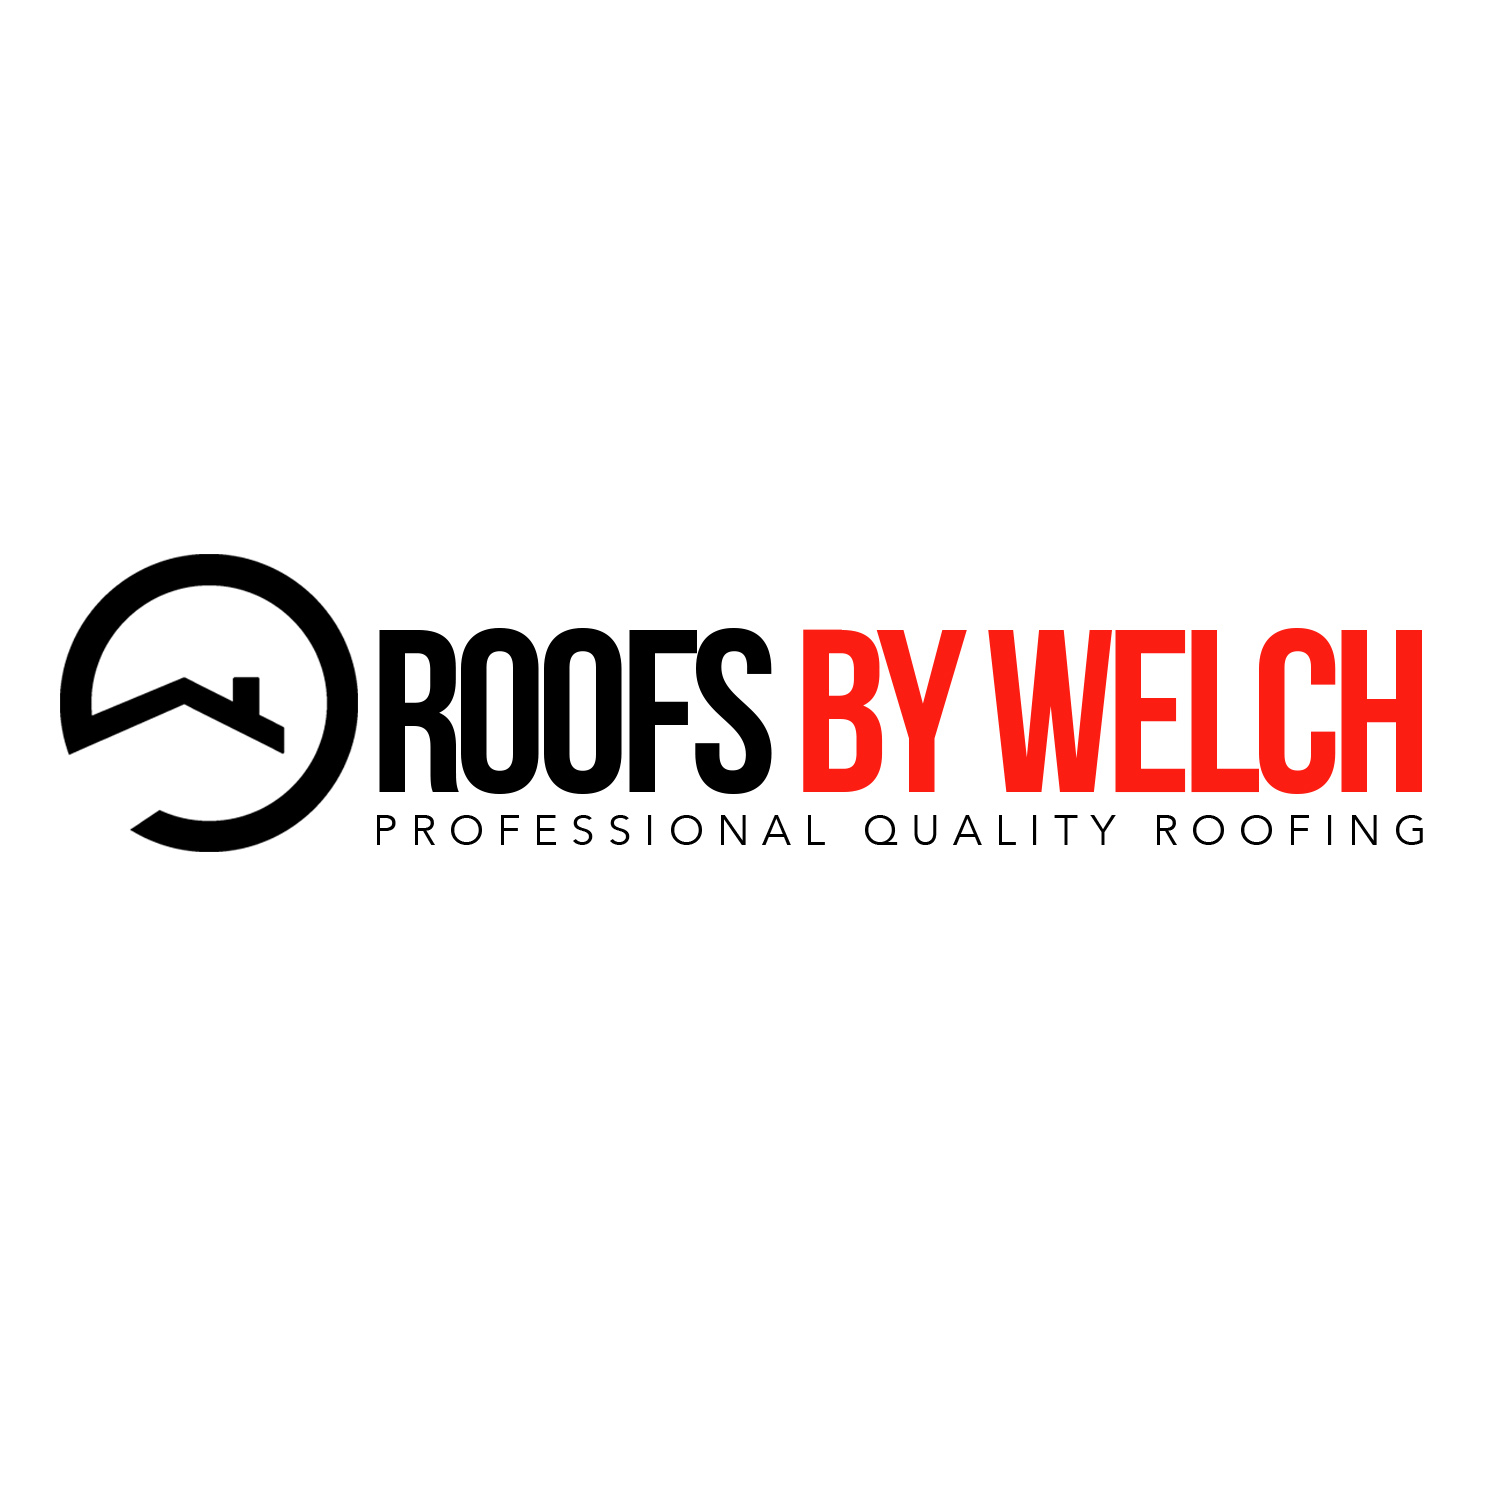 Roofs By Welch